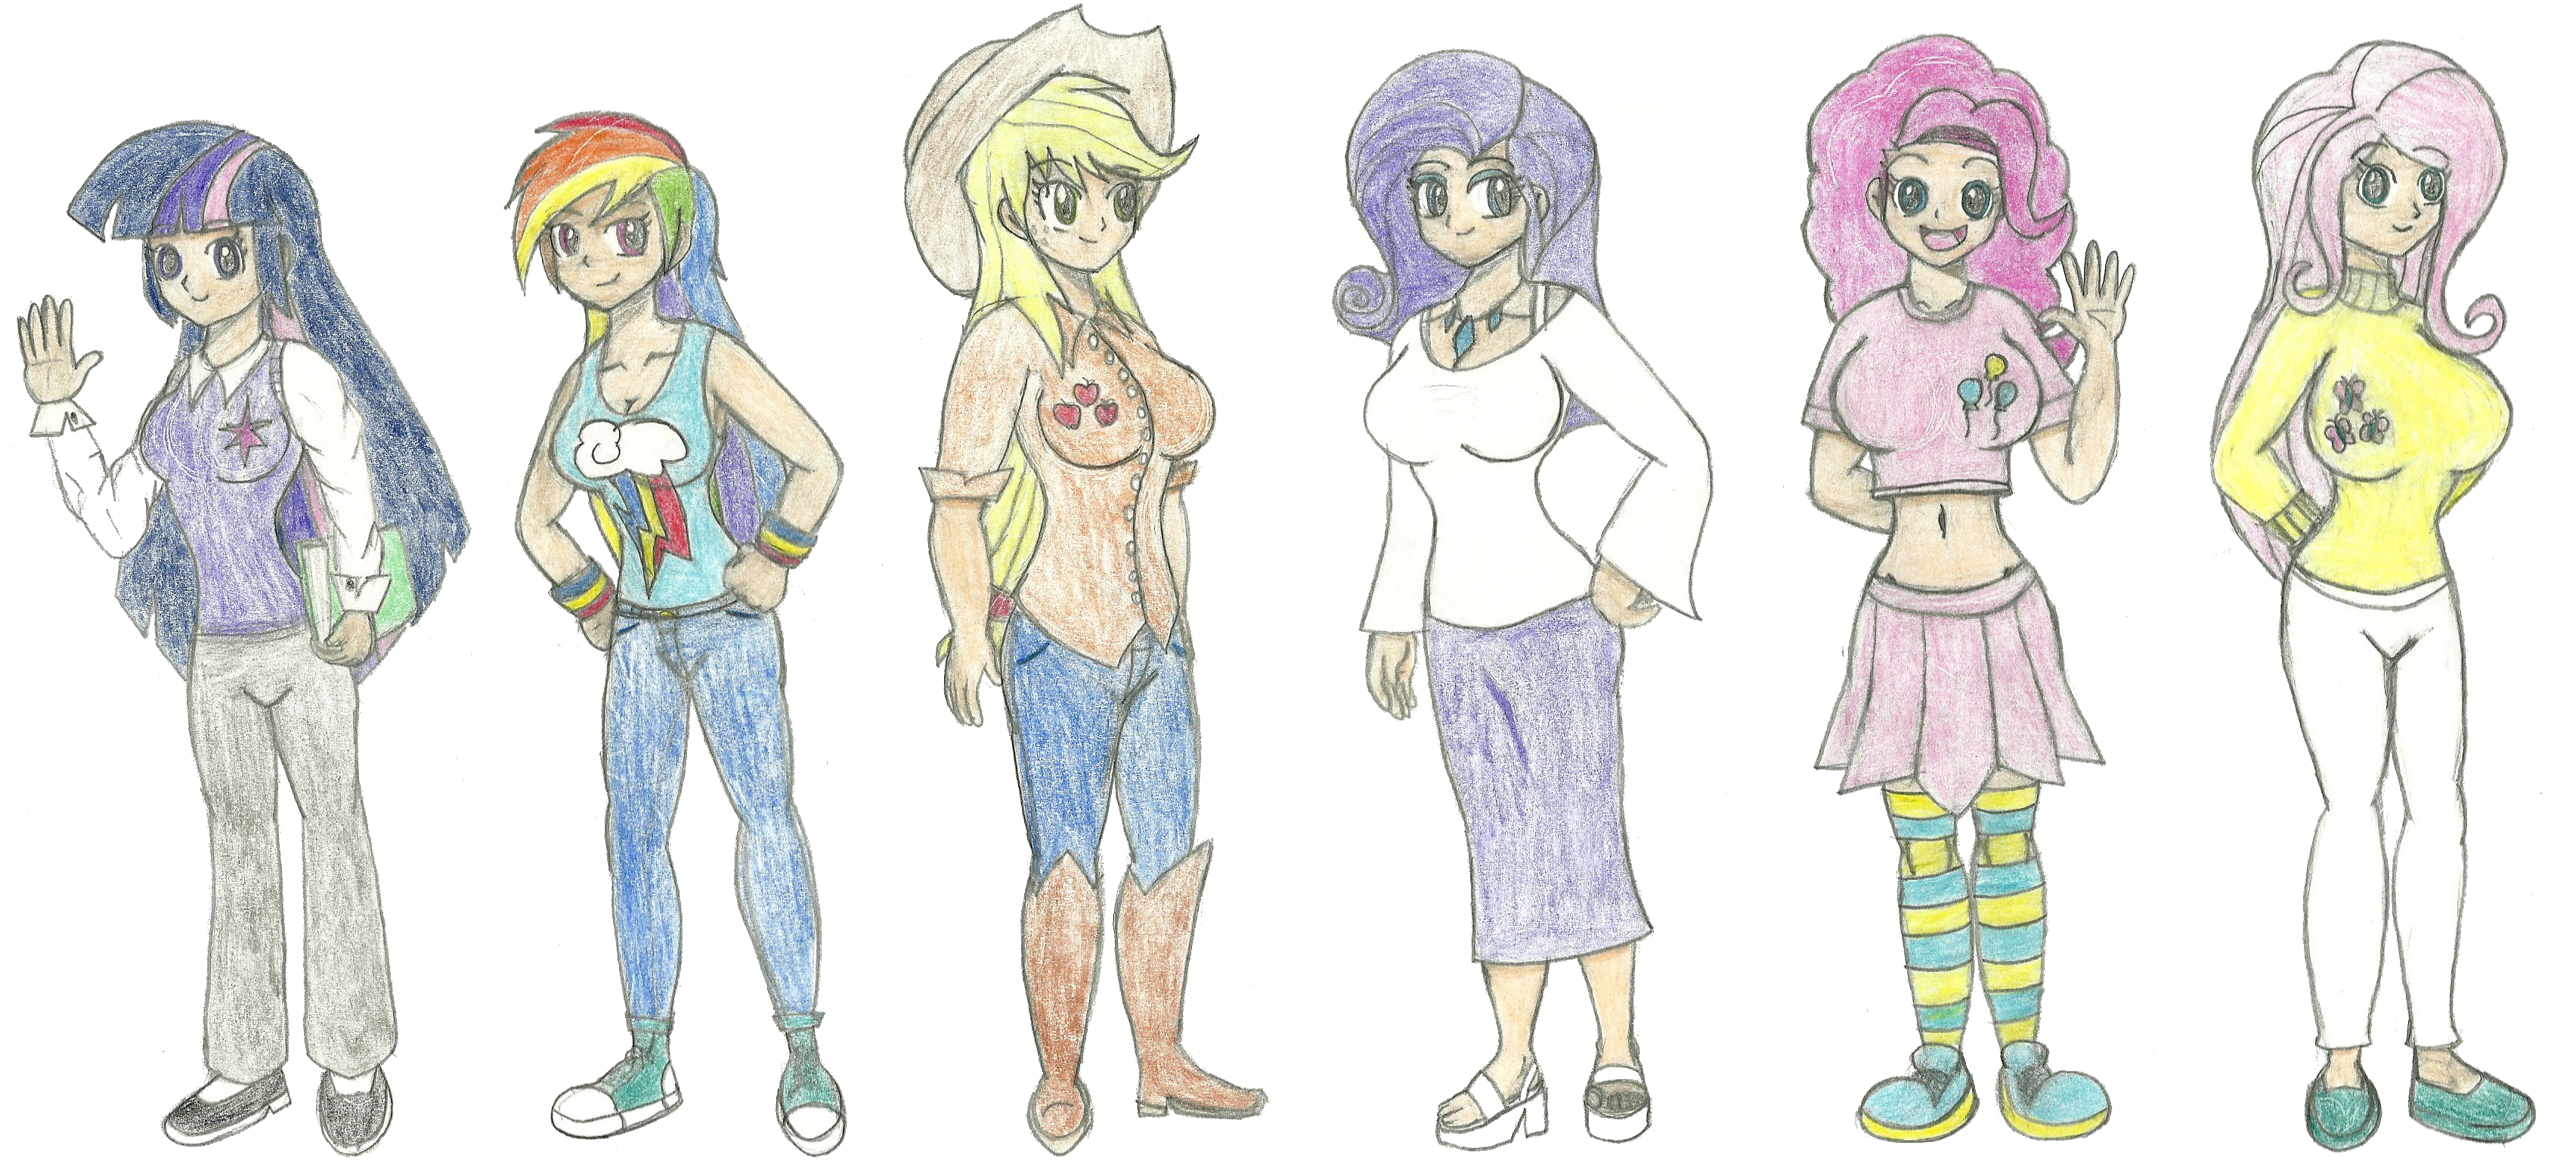 Full body mlp girls by warrior9100 full body mlp girls by warrior9100